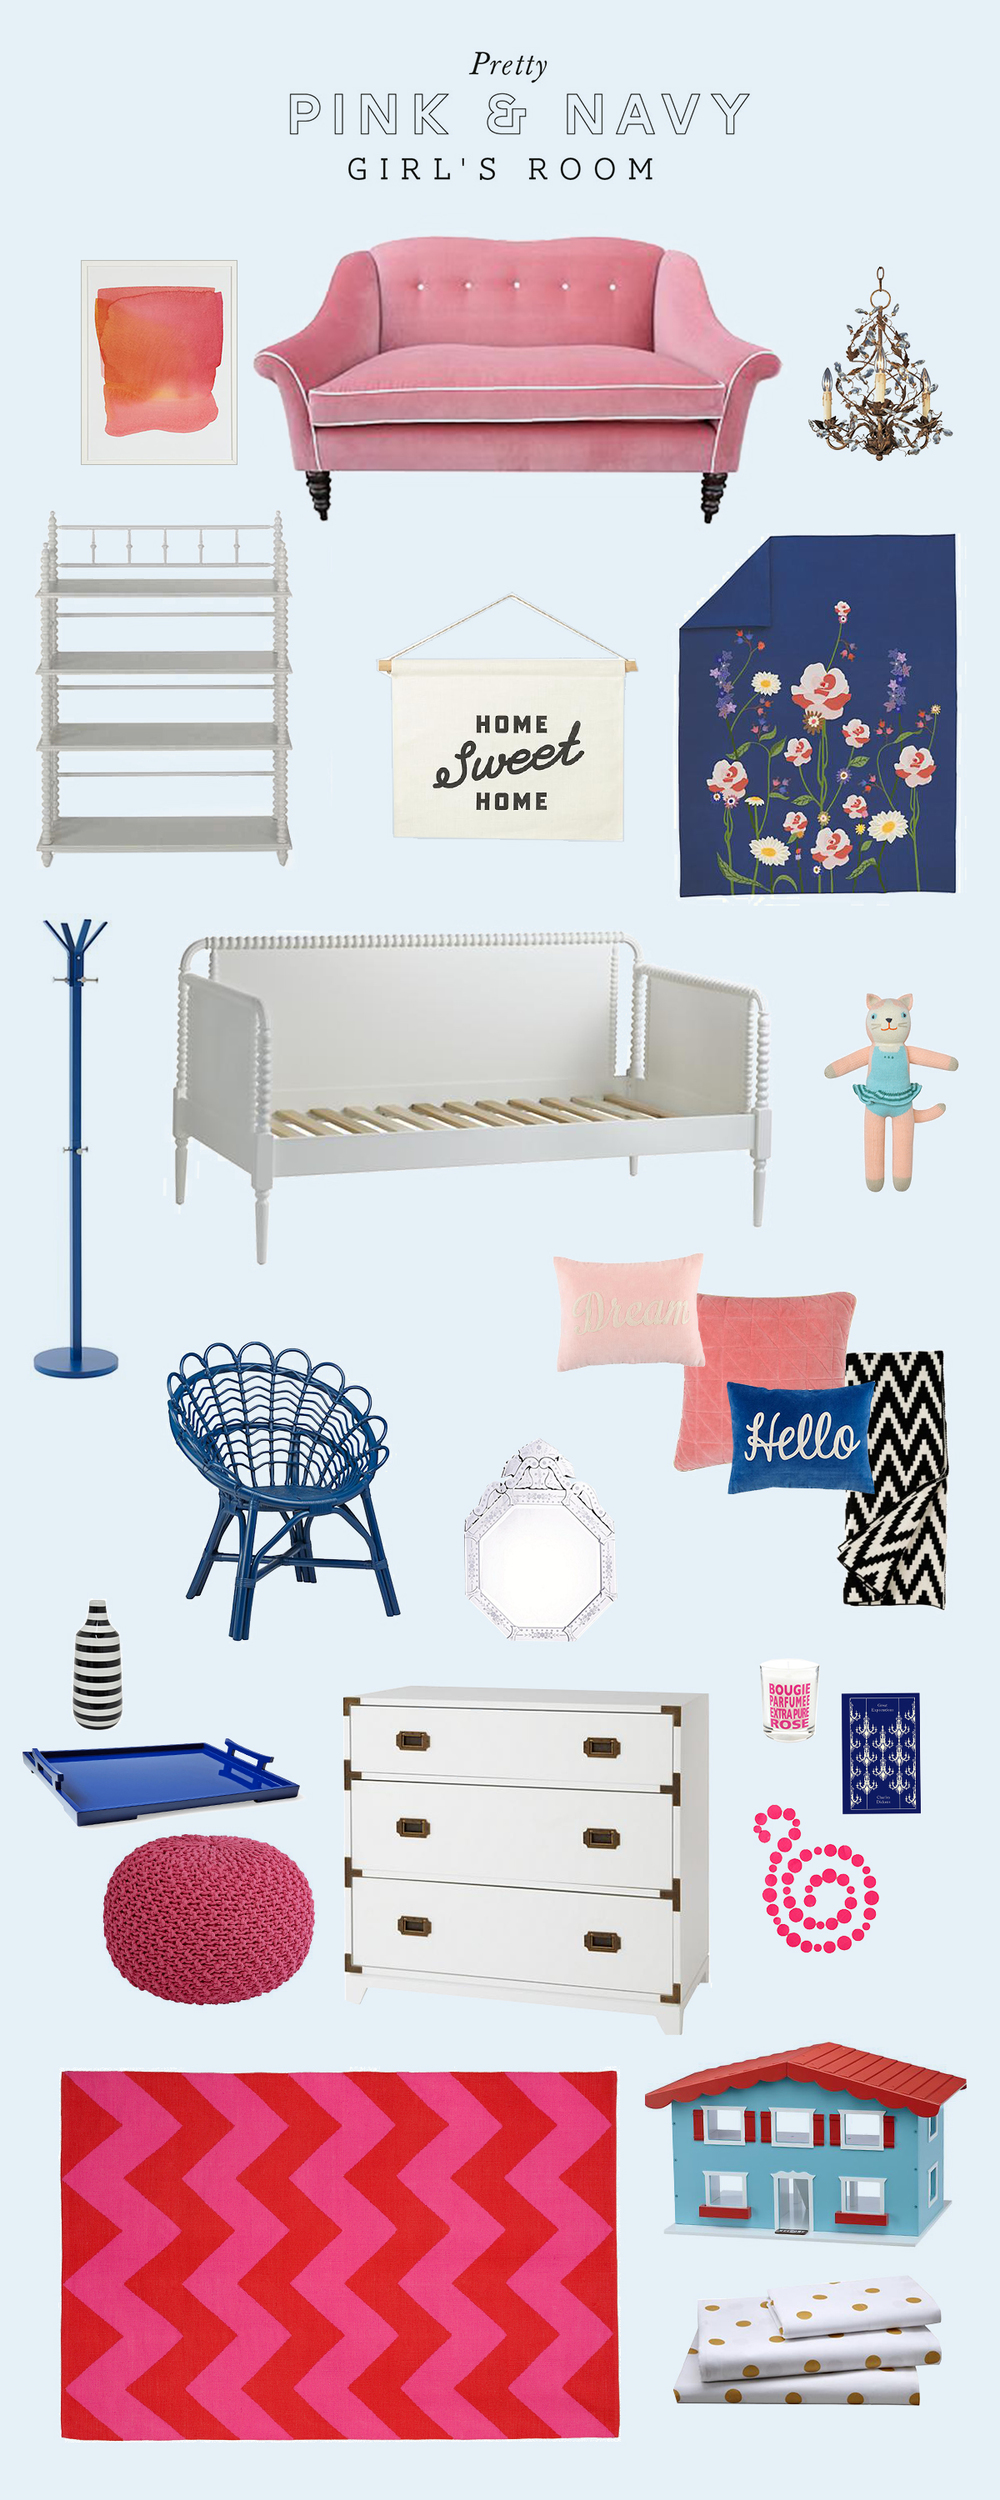 Pink & Navy Sources: Home Sweet Home Banner | Bouquet Bedding | Bookcase |  Daybed | Rattan Chair | Dream Pillow | Hello Pillow | Quilted Pillow | Knit Pouf | Campaign Dresser | Dollhouse | Gold Dot Sheet | Pink Garland | Navy Tray | Stripped Vase | Pink Candle | Elegant Chandelier | Mercer Throw Blanket | Marnie Clear Mirror | Penguin Classic Book| Pink Wall Art | Blabla Kitty | Pattern Society Rug|